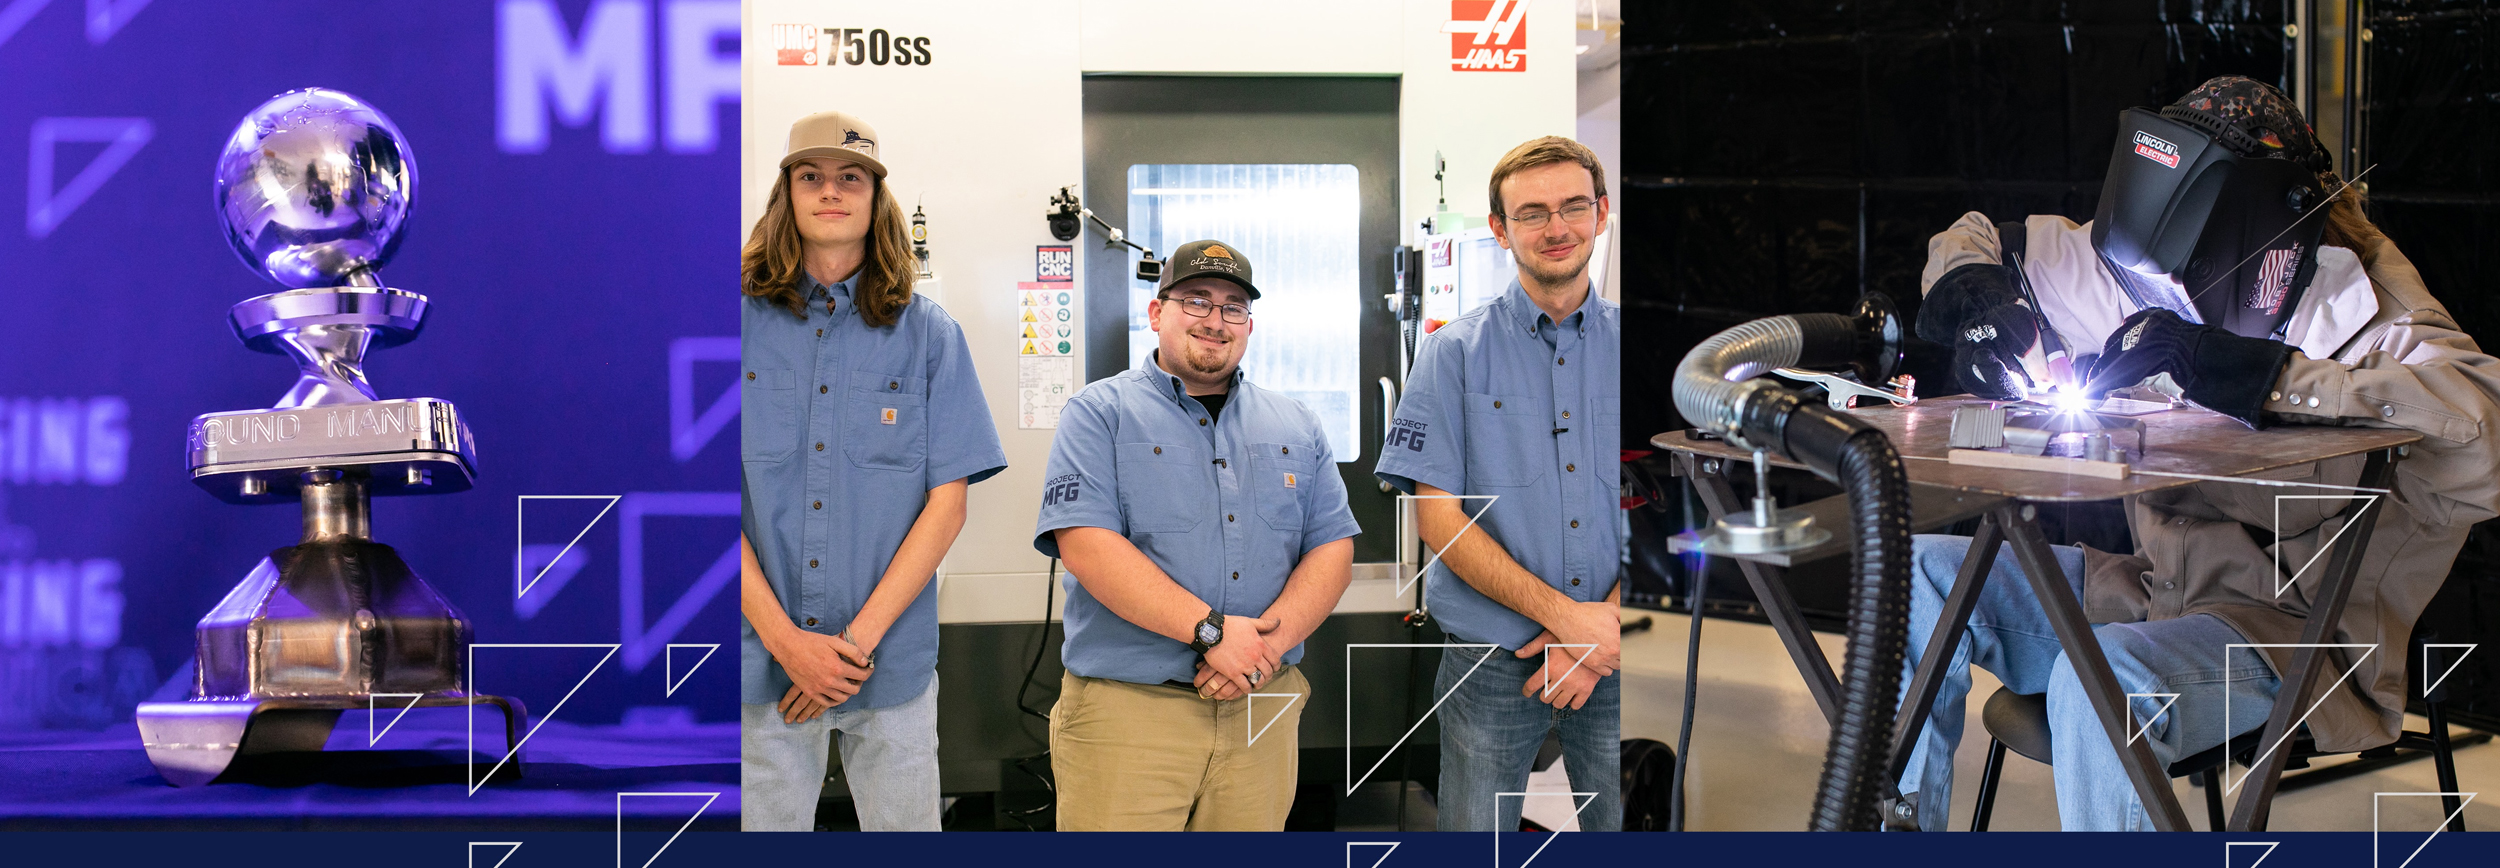 photos from the Project MFG 202 National Championship